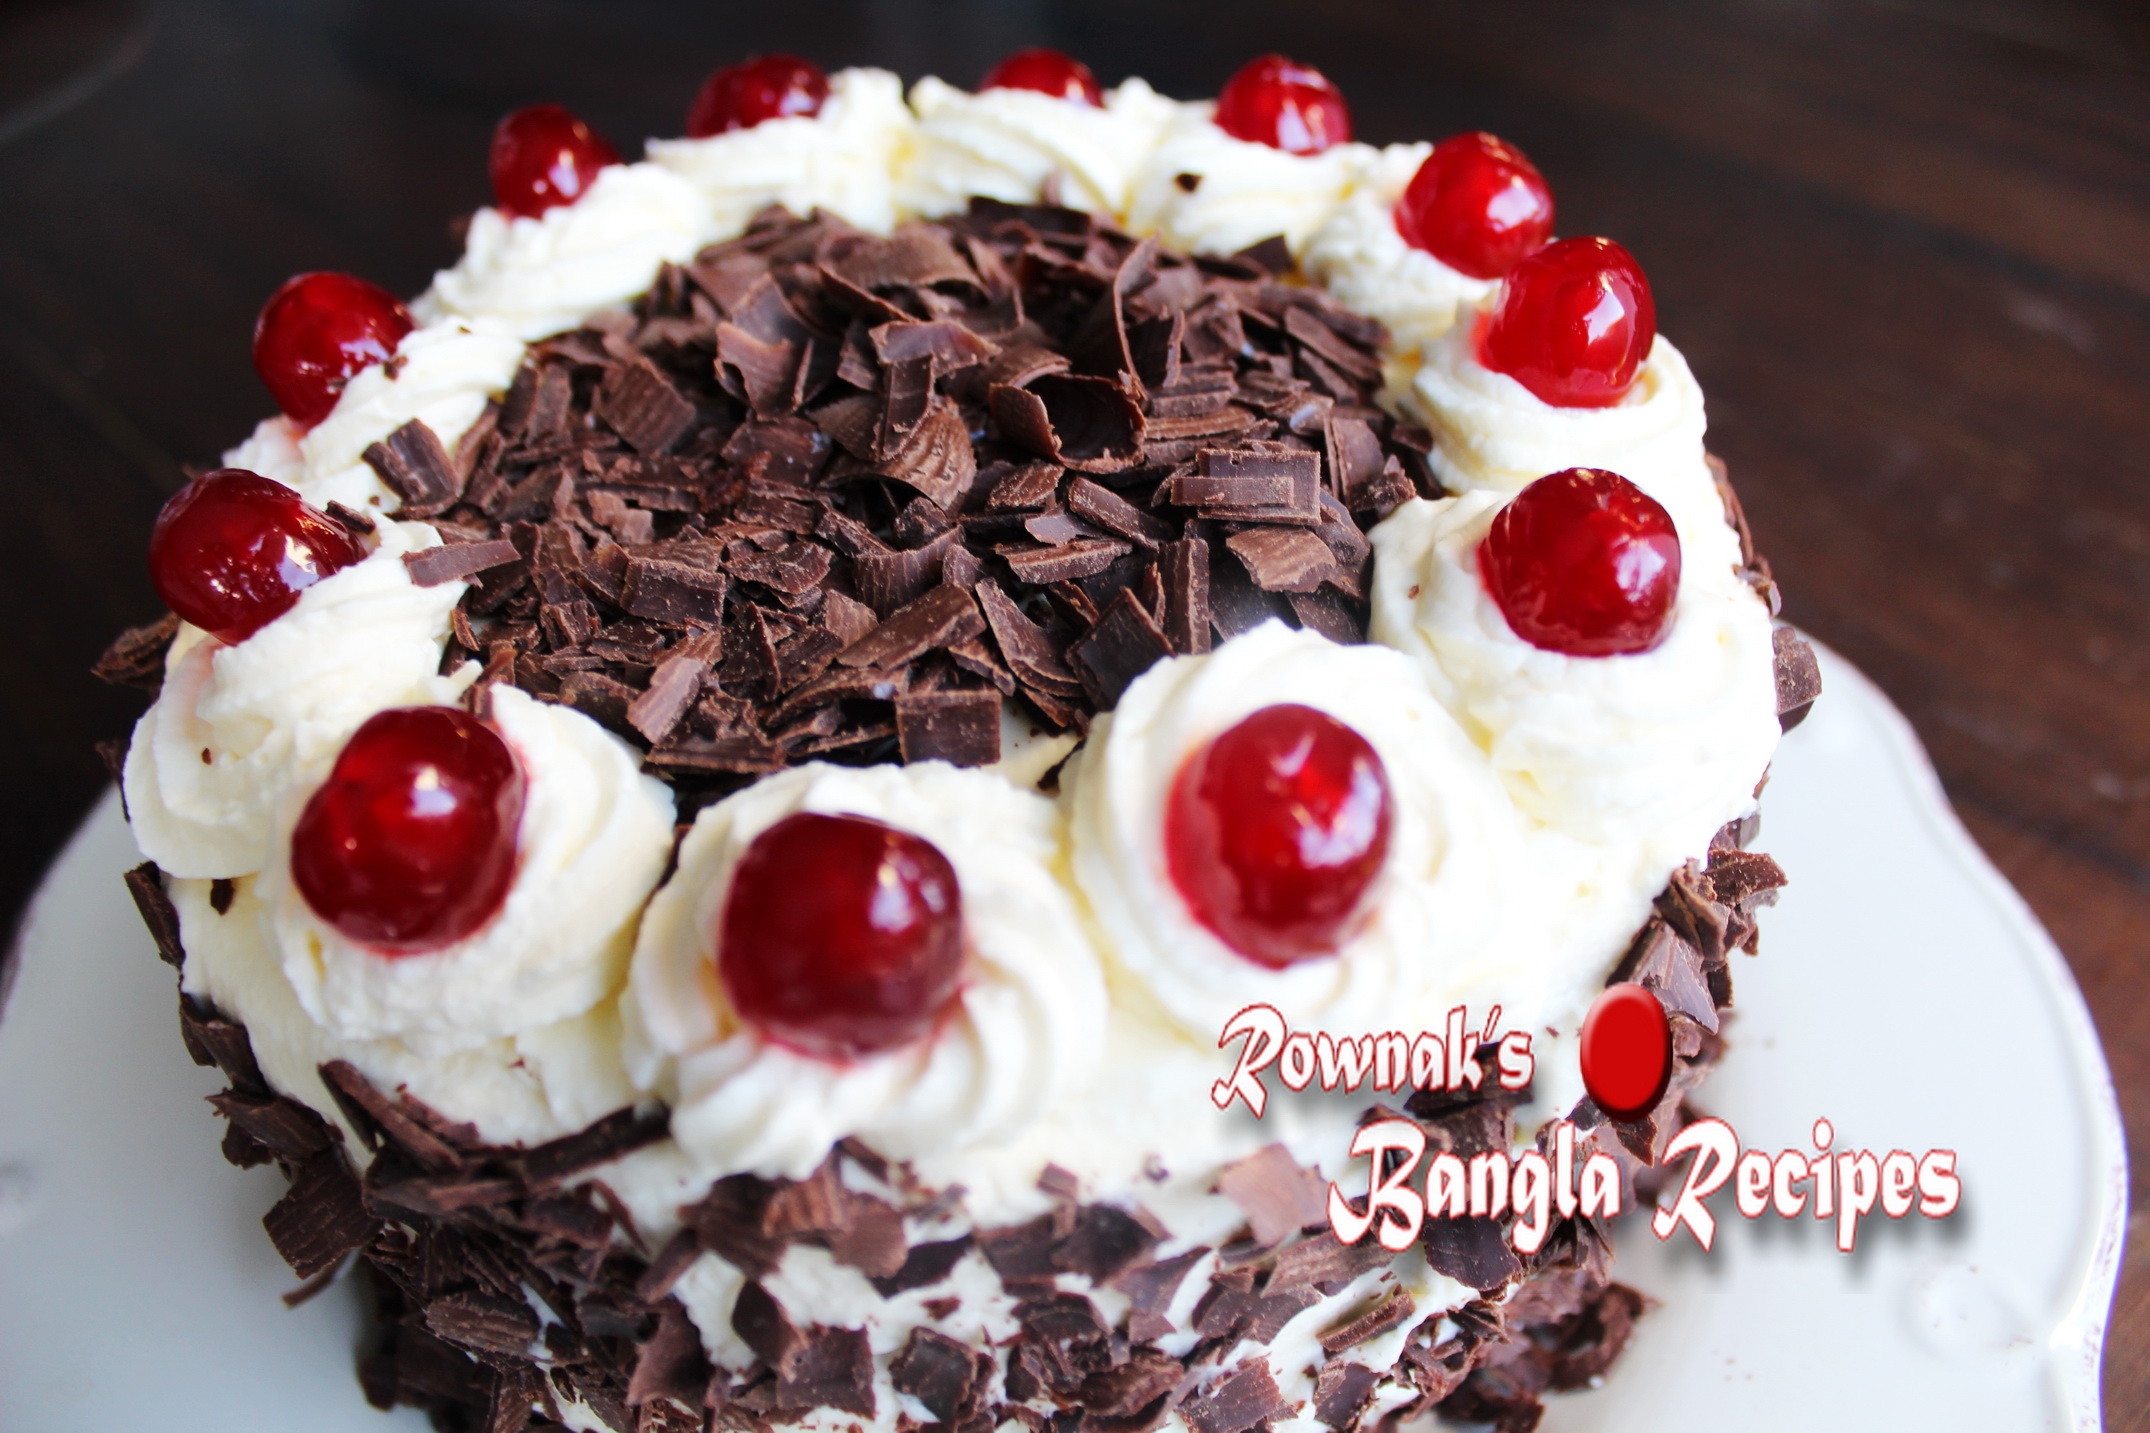 Best Black Forest Cake Images : Appetizers Taste Of Home Recipes Ask Home Design